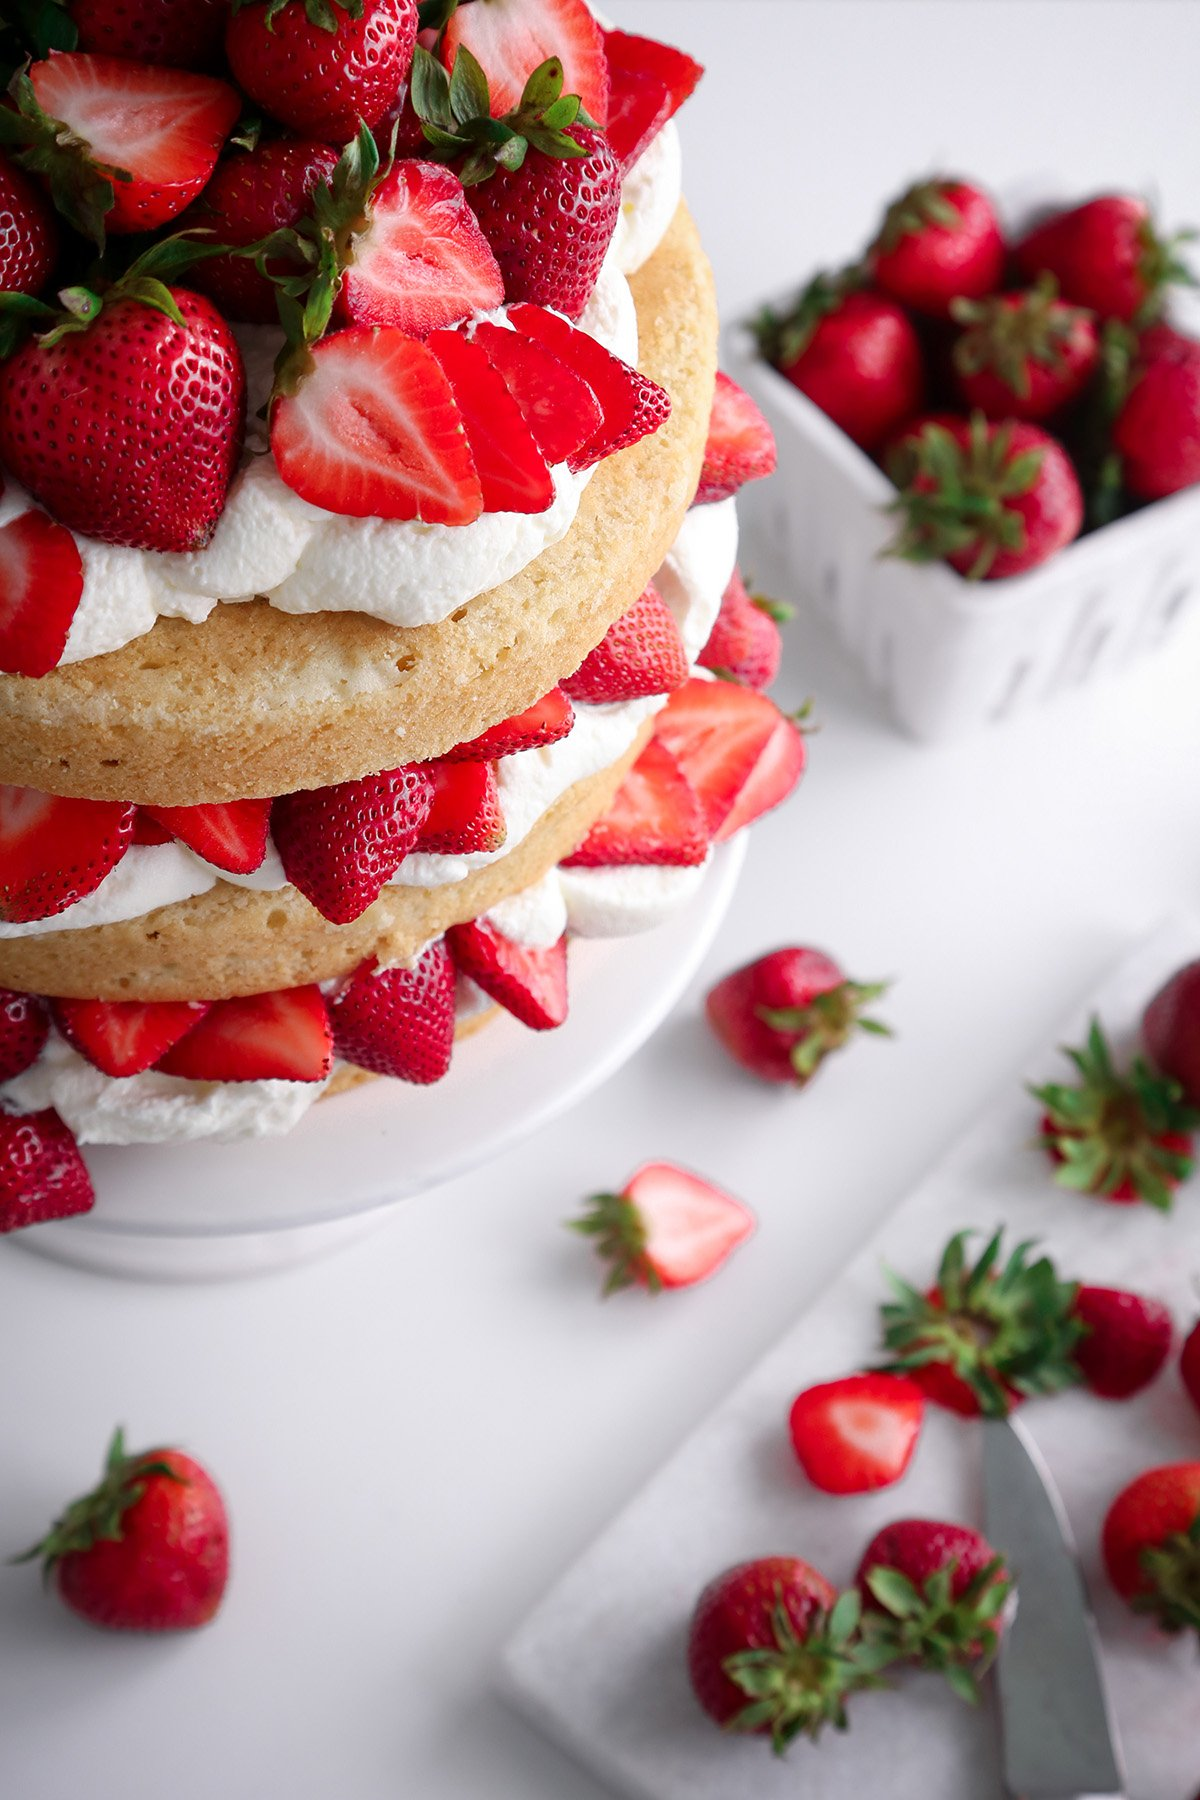 Strawberry Shortcake Cake | Vegan friendly with gluten-free option